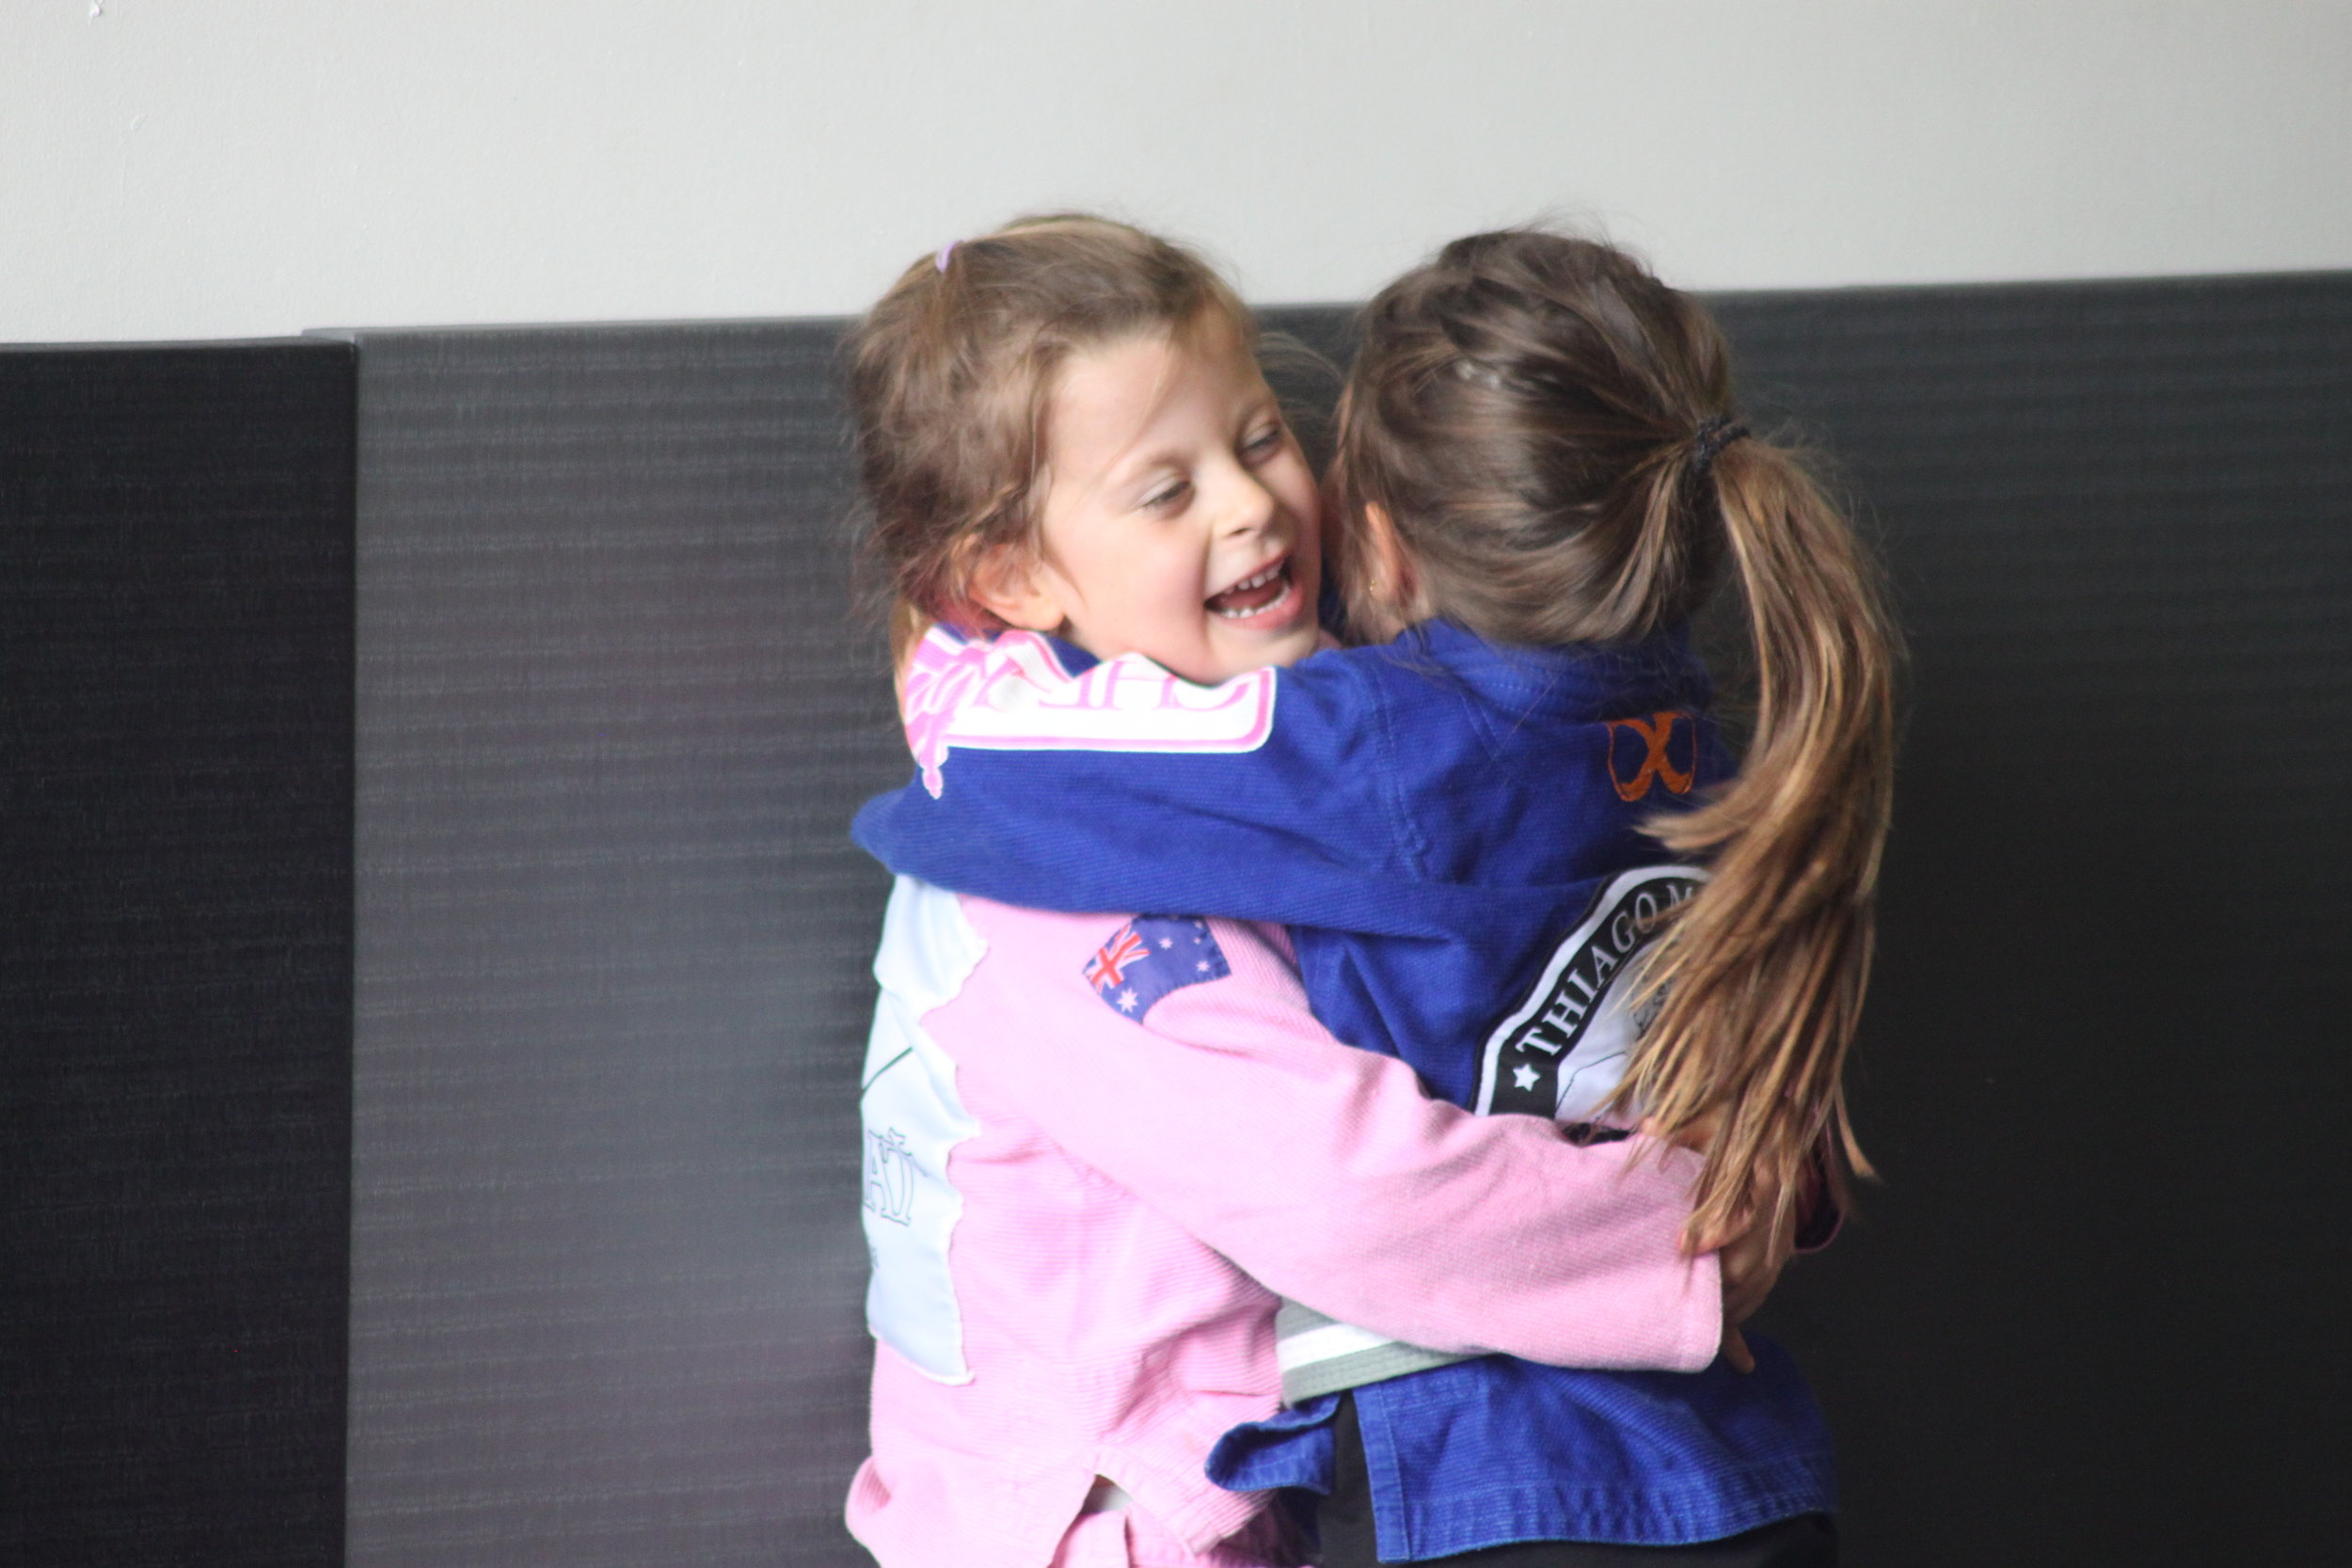 Checkmat Tweed Heads is a friendly, family-loving academy